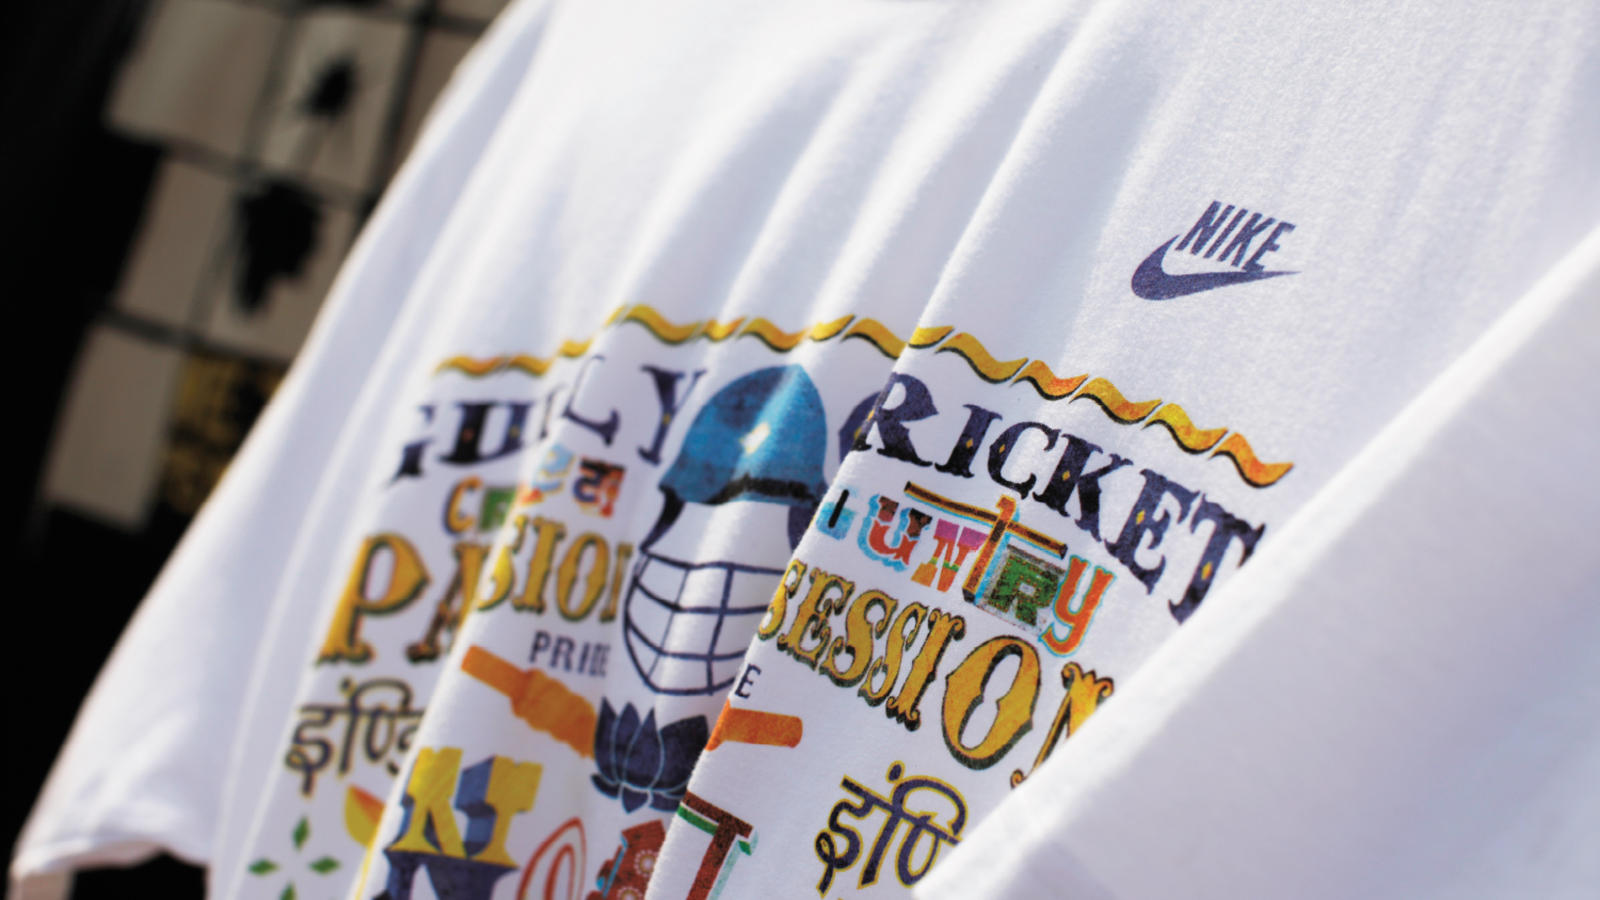 NIKE SPORTSWEAR PRESENTS CRICKET